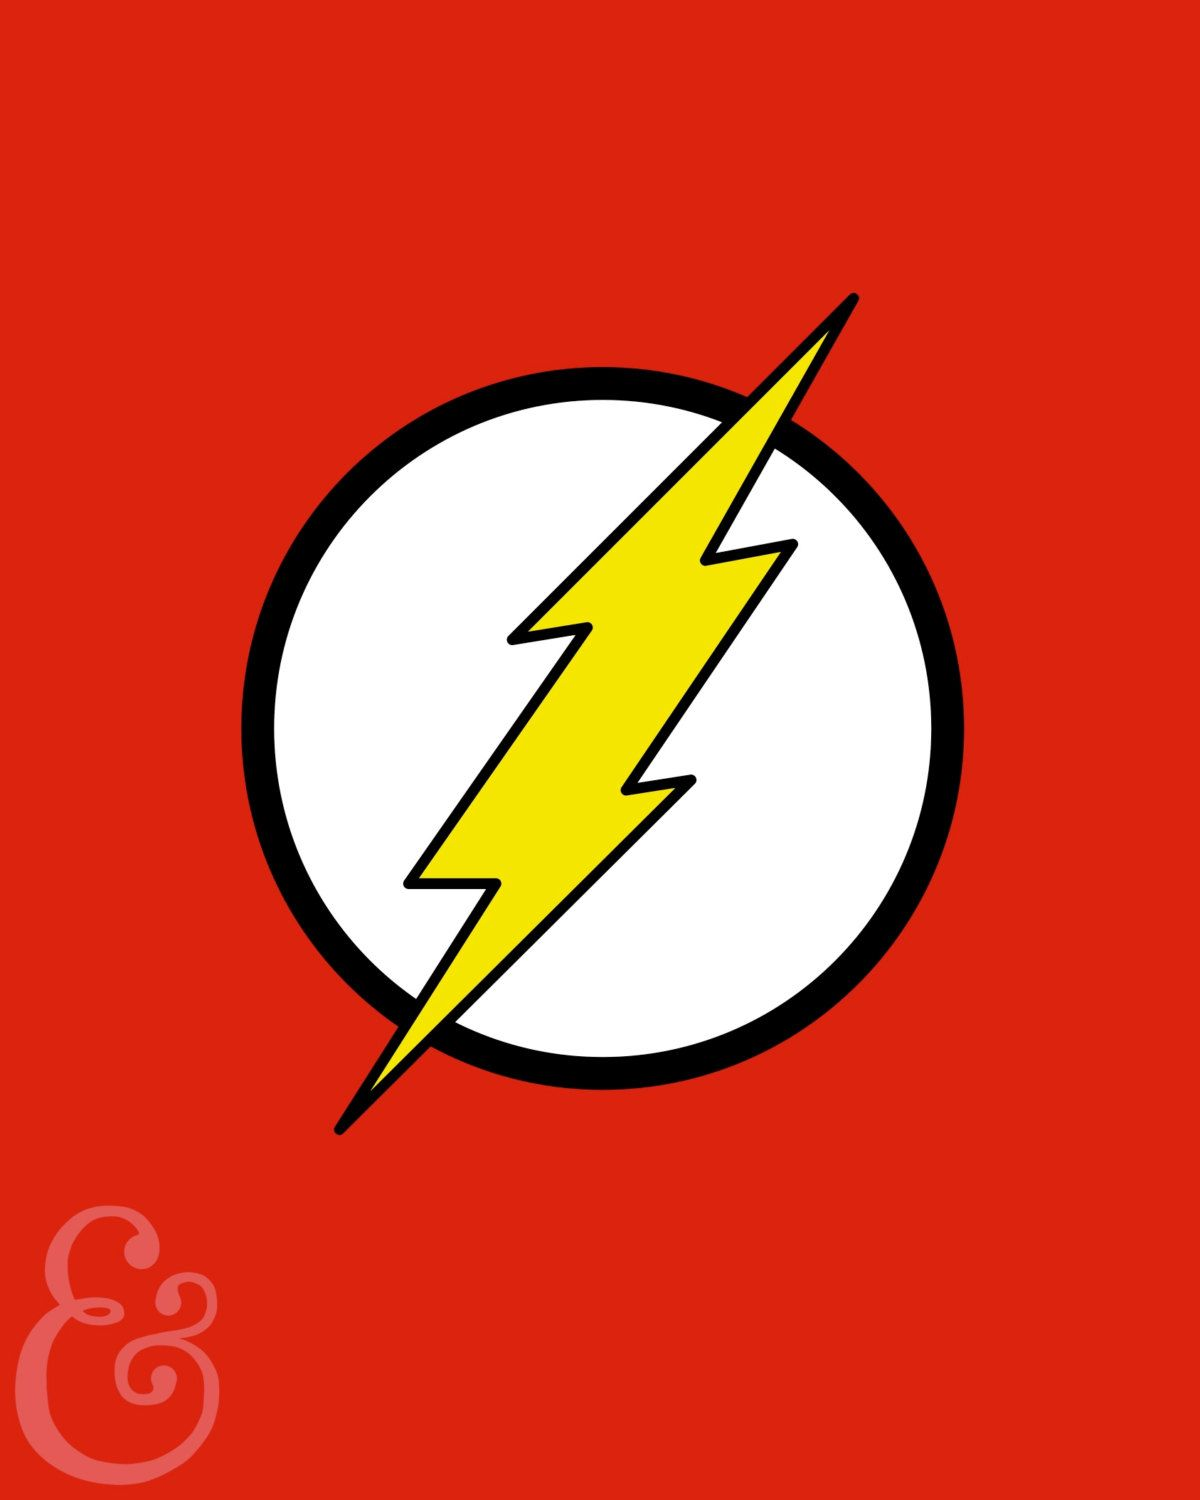 The flash symbol to draw pinterest symbols birthdays and the flash symbol to draw pinterest symbols birthdays and birthday party ideas buycottarizona Image collections